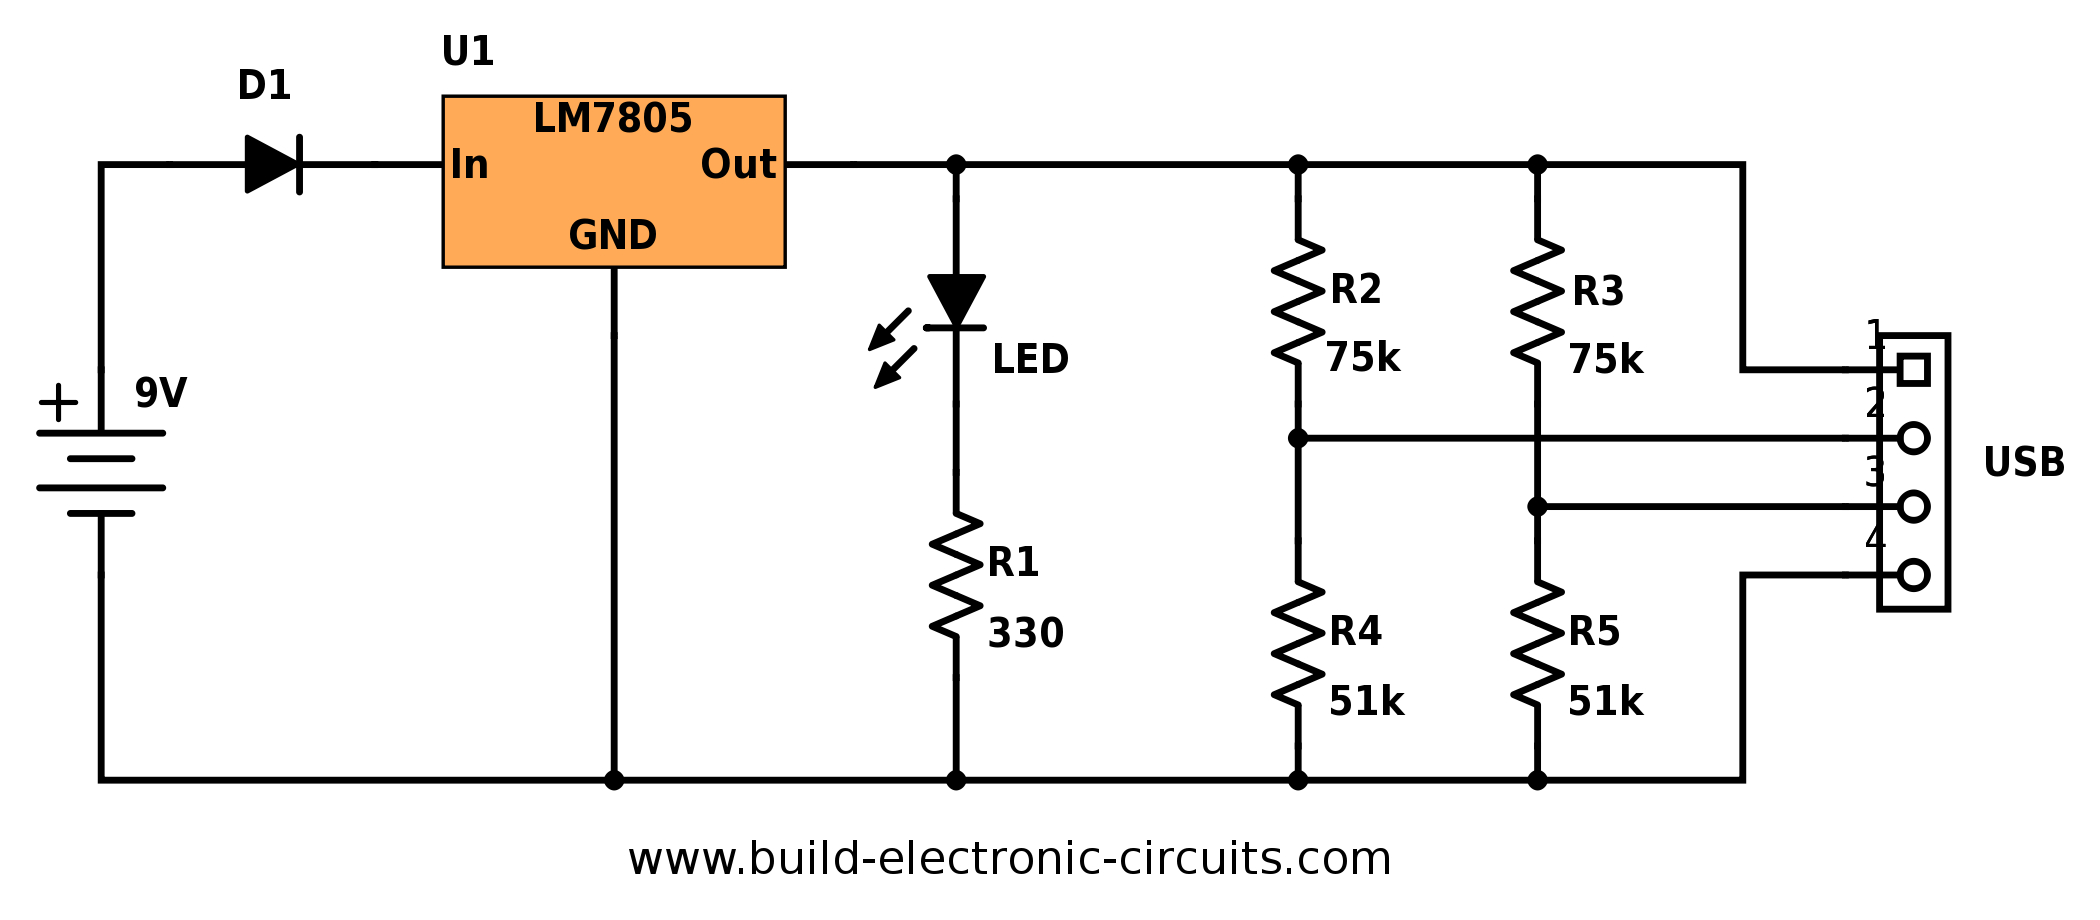 Portable Usb Charger Circuit - Build Electronic Circuits - Wiring Diagram 12 Volt To Usb